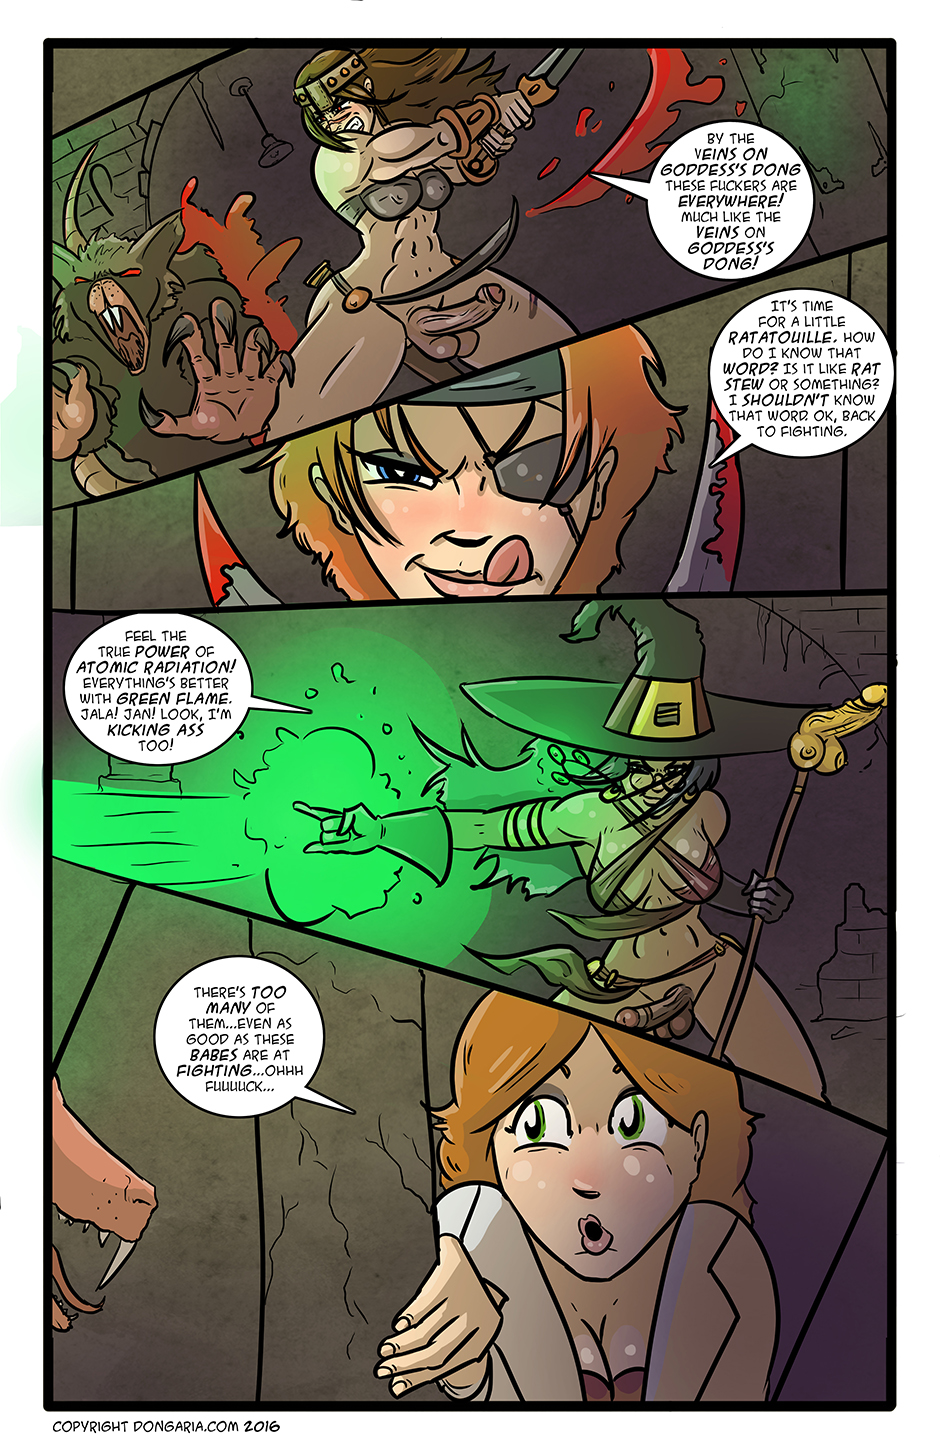 Babes of Dongaria Chapter 3 Page 13: Rat Smashin'